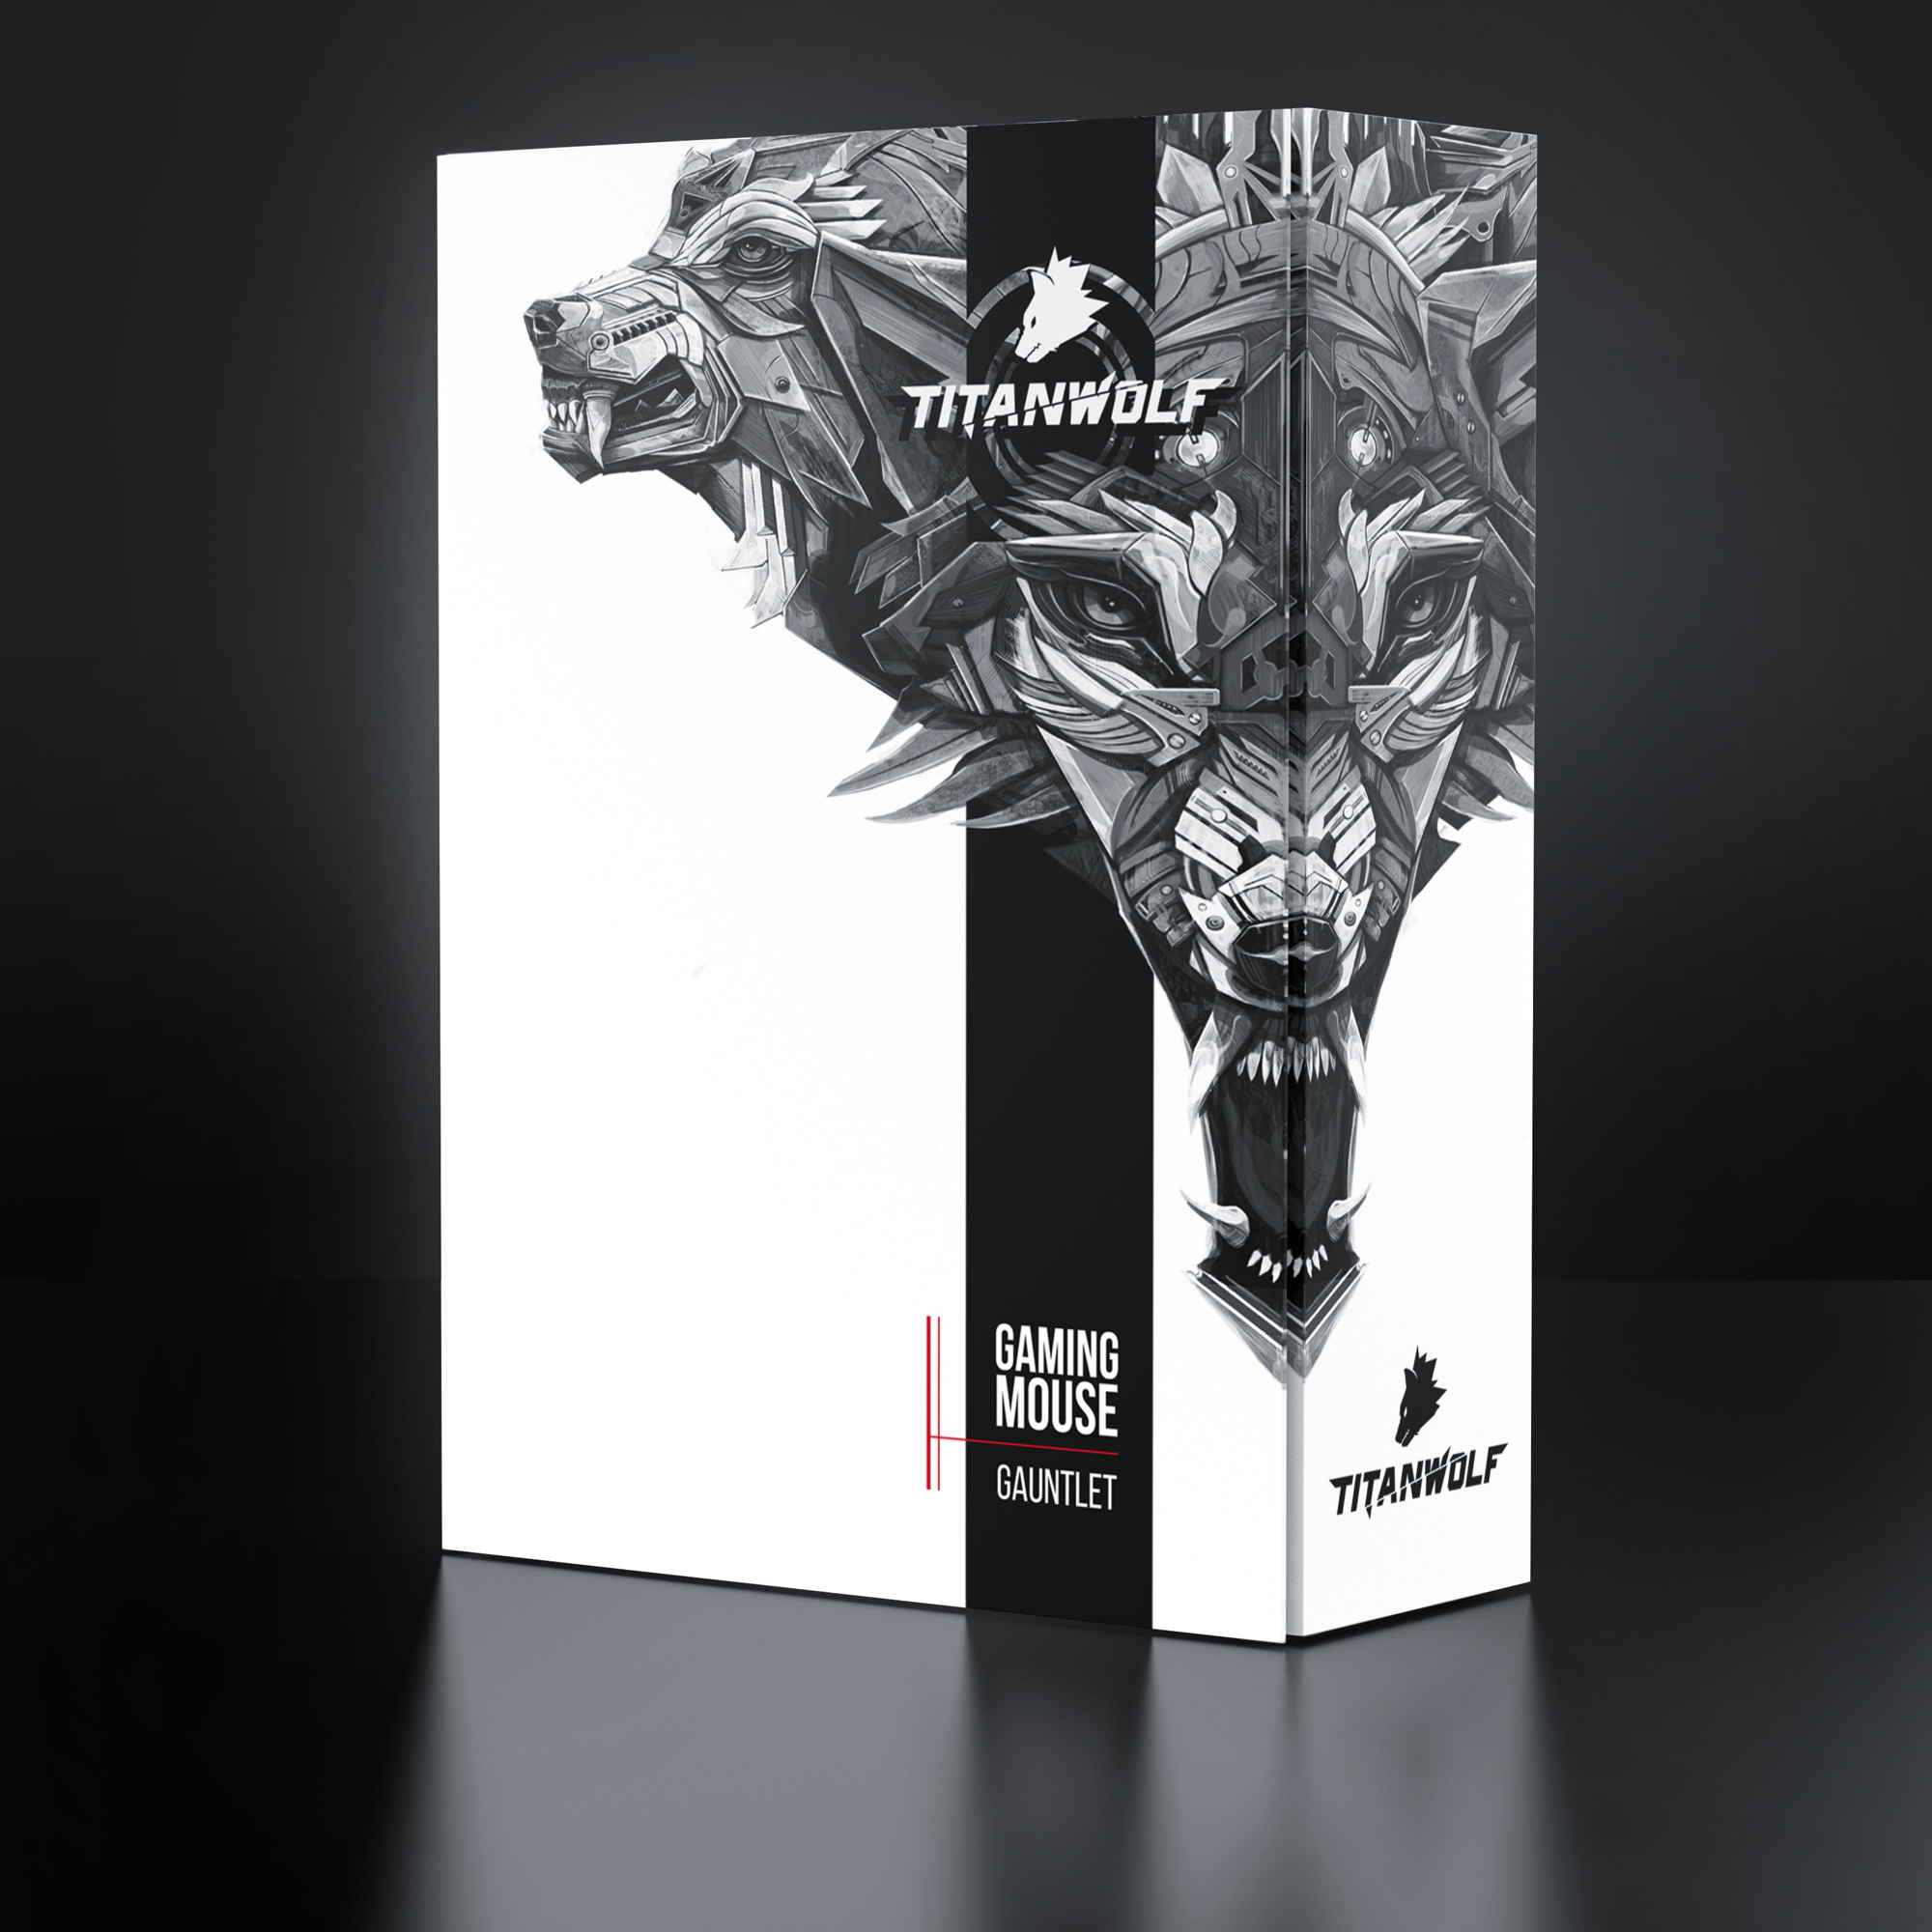 300736_Titanwolf-Gauntlet-packshot.jpg